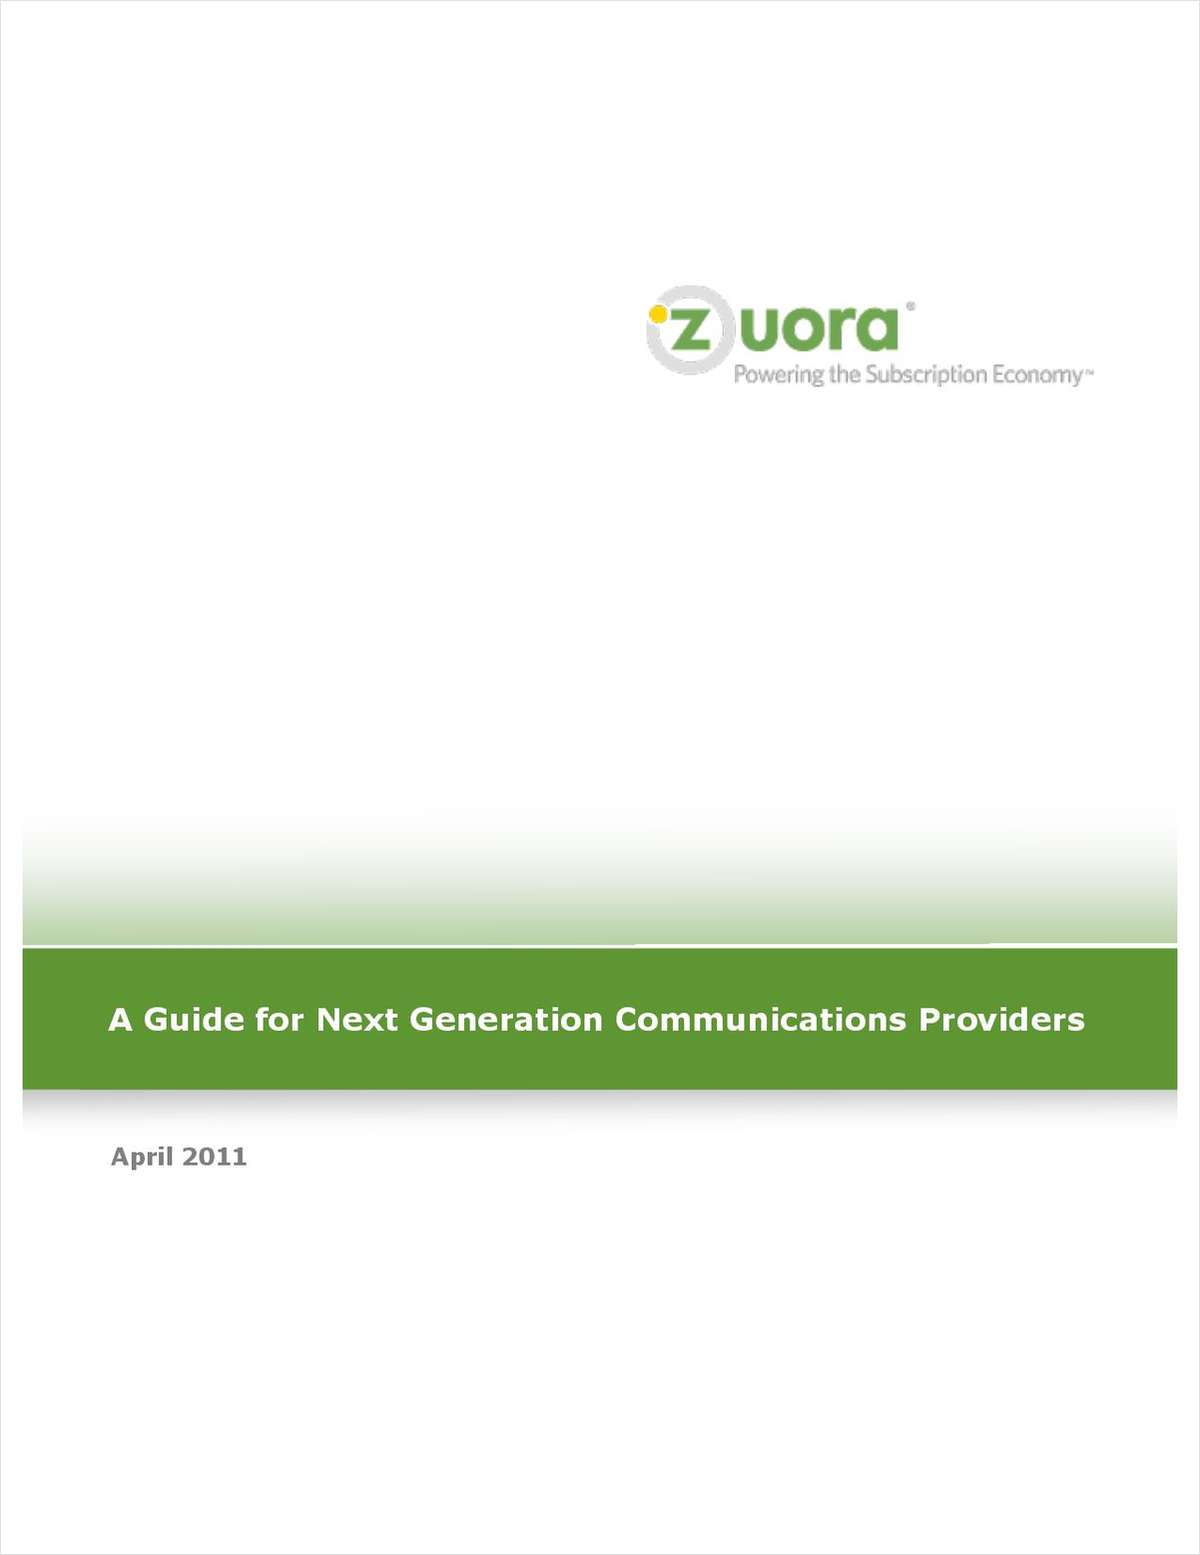 A Guide for Next Generation Communications Providers